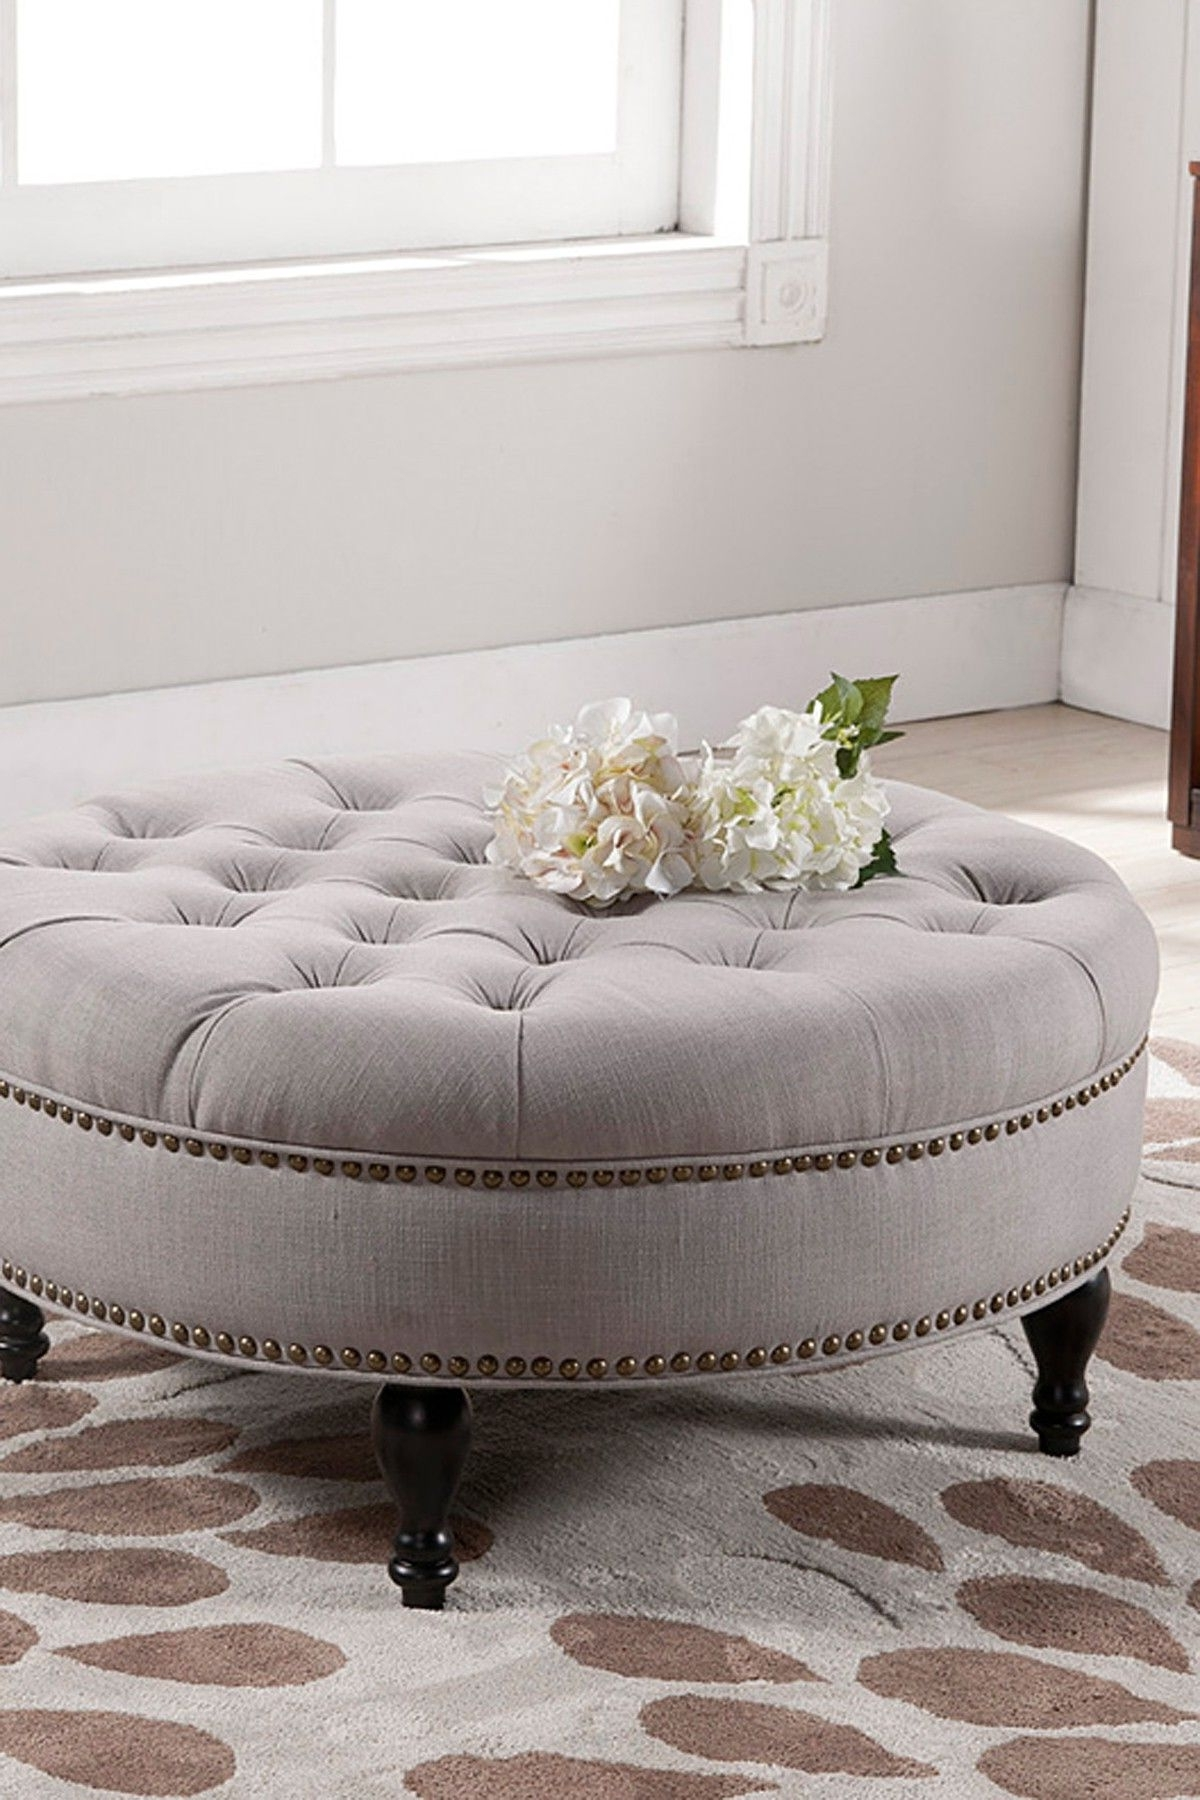 Tufted Ottoman (View 8 of 20)